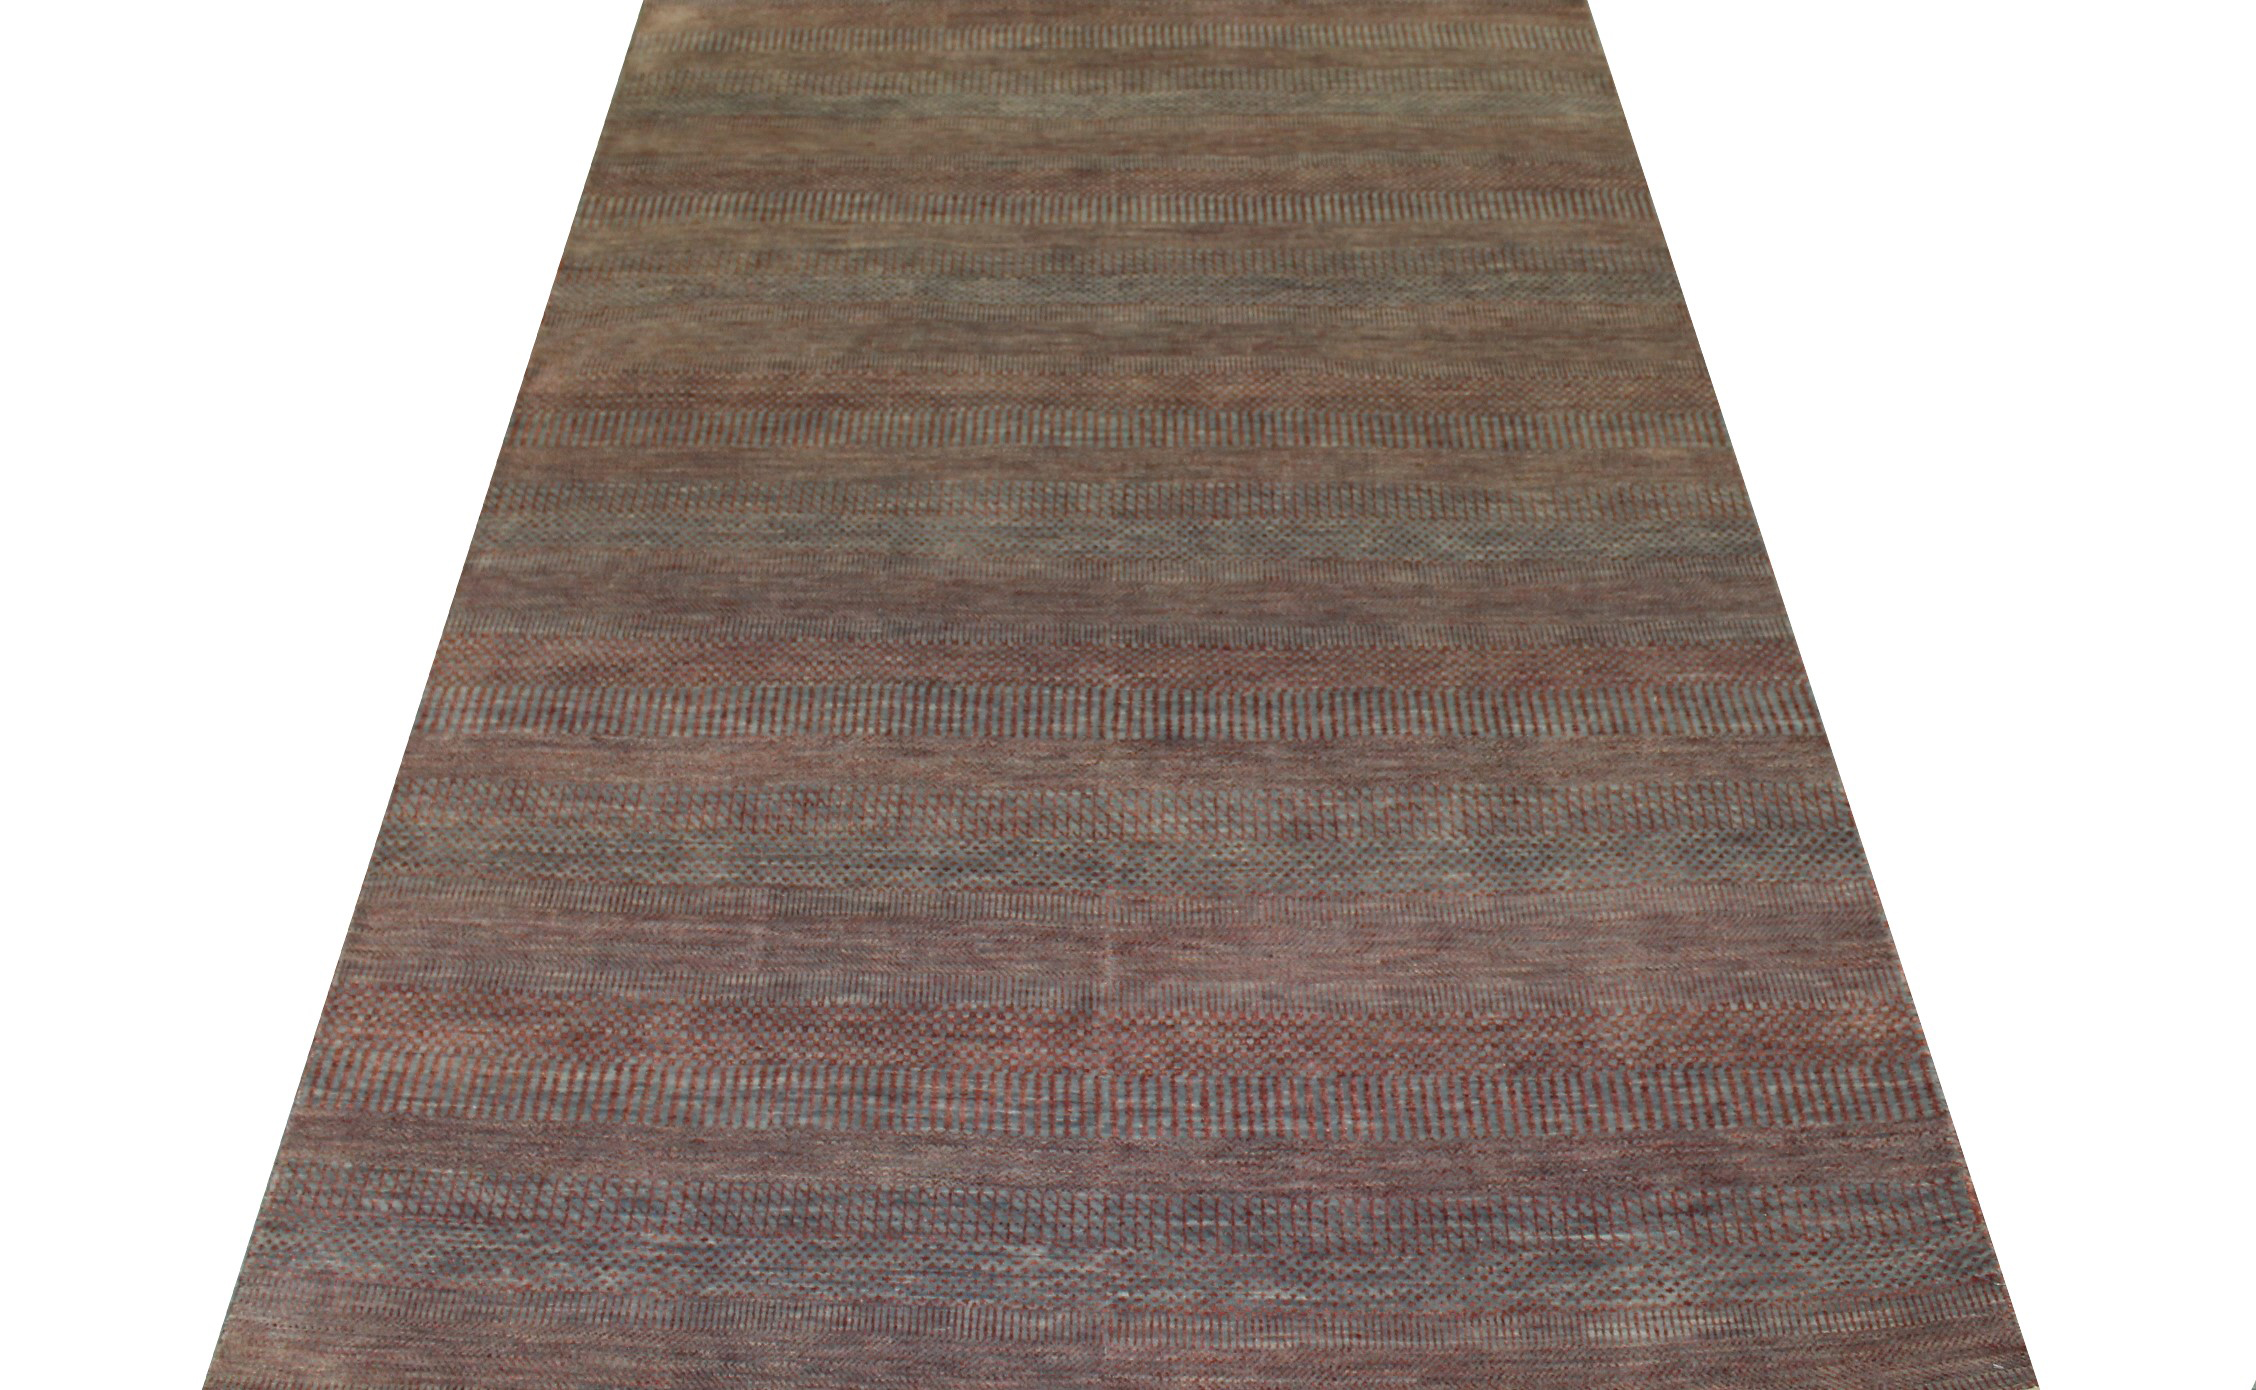 6x9  Hand Knotted Wool Area Rug - MR022957